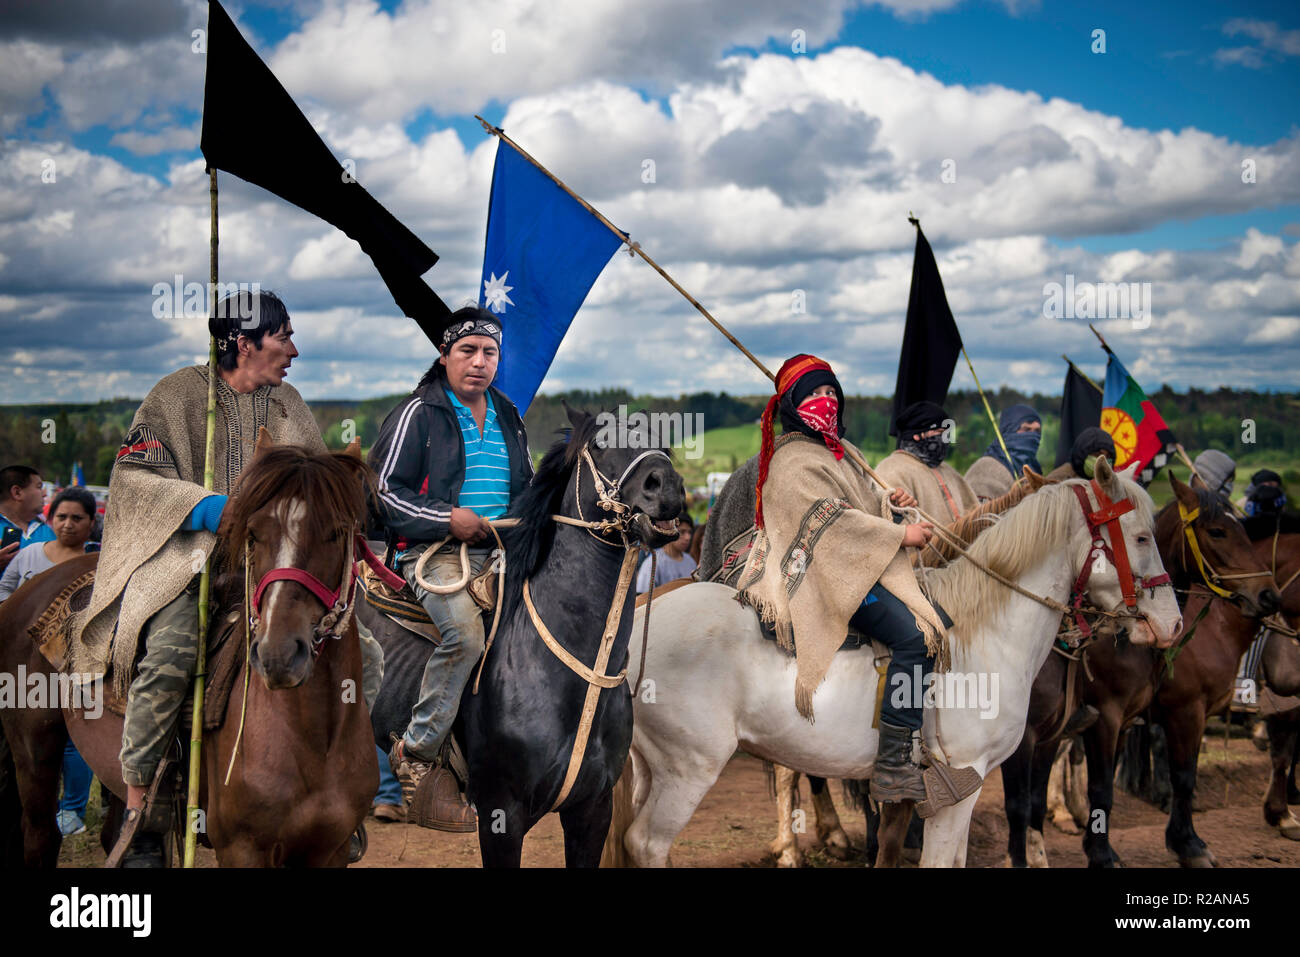 17 November 2018, Chile, Temucuicui: 'Weichafe', fighters from the indigenous Mapuche people, on horseback, take part in the funeral of 24-year-old Camilo Catrillanca in a cemetery. A special unit of the Chilean military police (Carabineros) had shot Catrillanca on 14.11.2018 in the indigenous Mapuche community Temucuicui. According to police, the officers tracked three car thieves who had stolen their teachers' vehicles. The persecution led them into the territory of the Mapuche community of Temucuicui. Following Catrillanca's death, Mapuche organisations have called for protests across the c - Stock Image